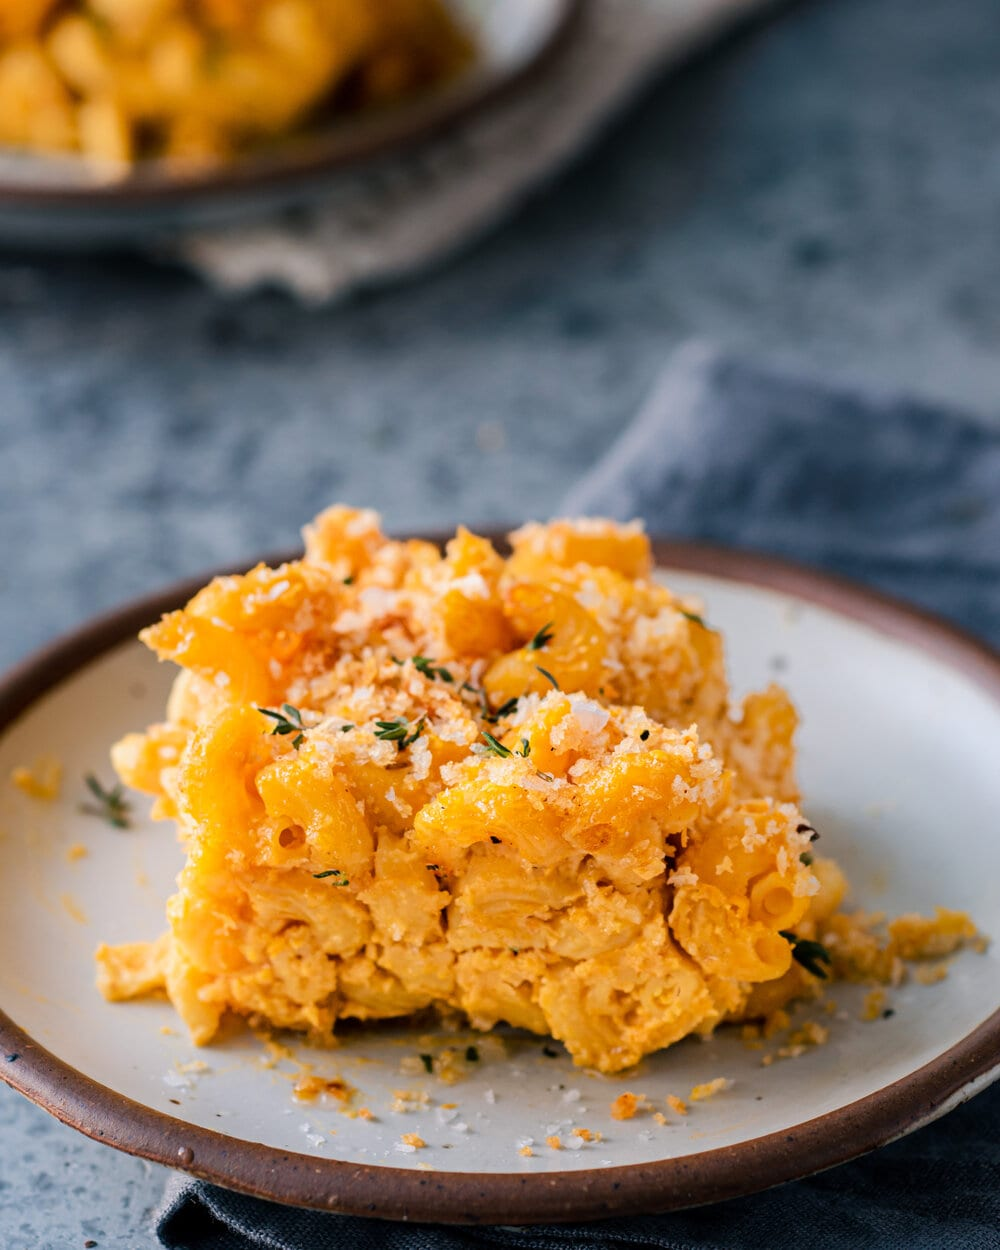 baked mac and cheese - stack on plate 2.jpg